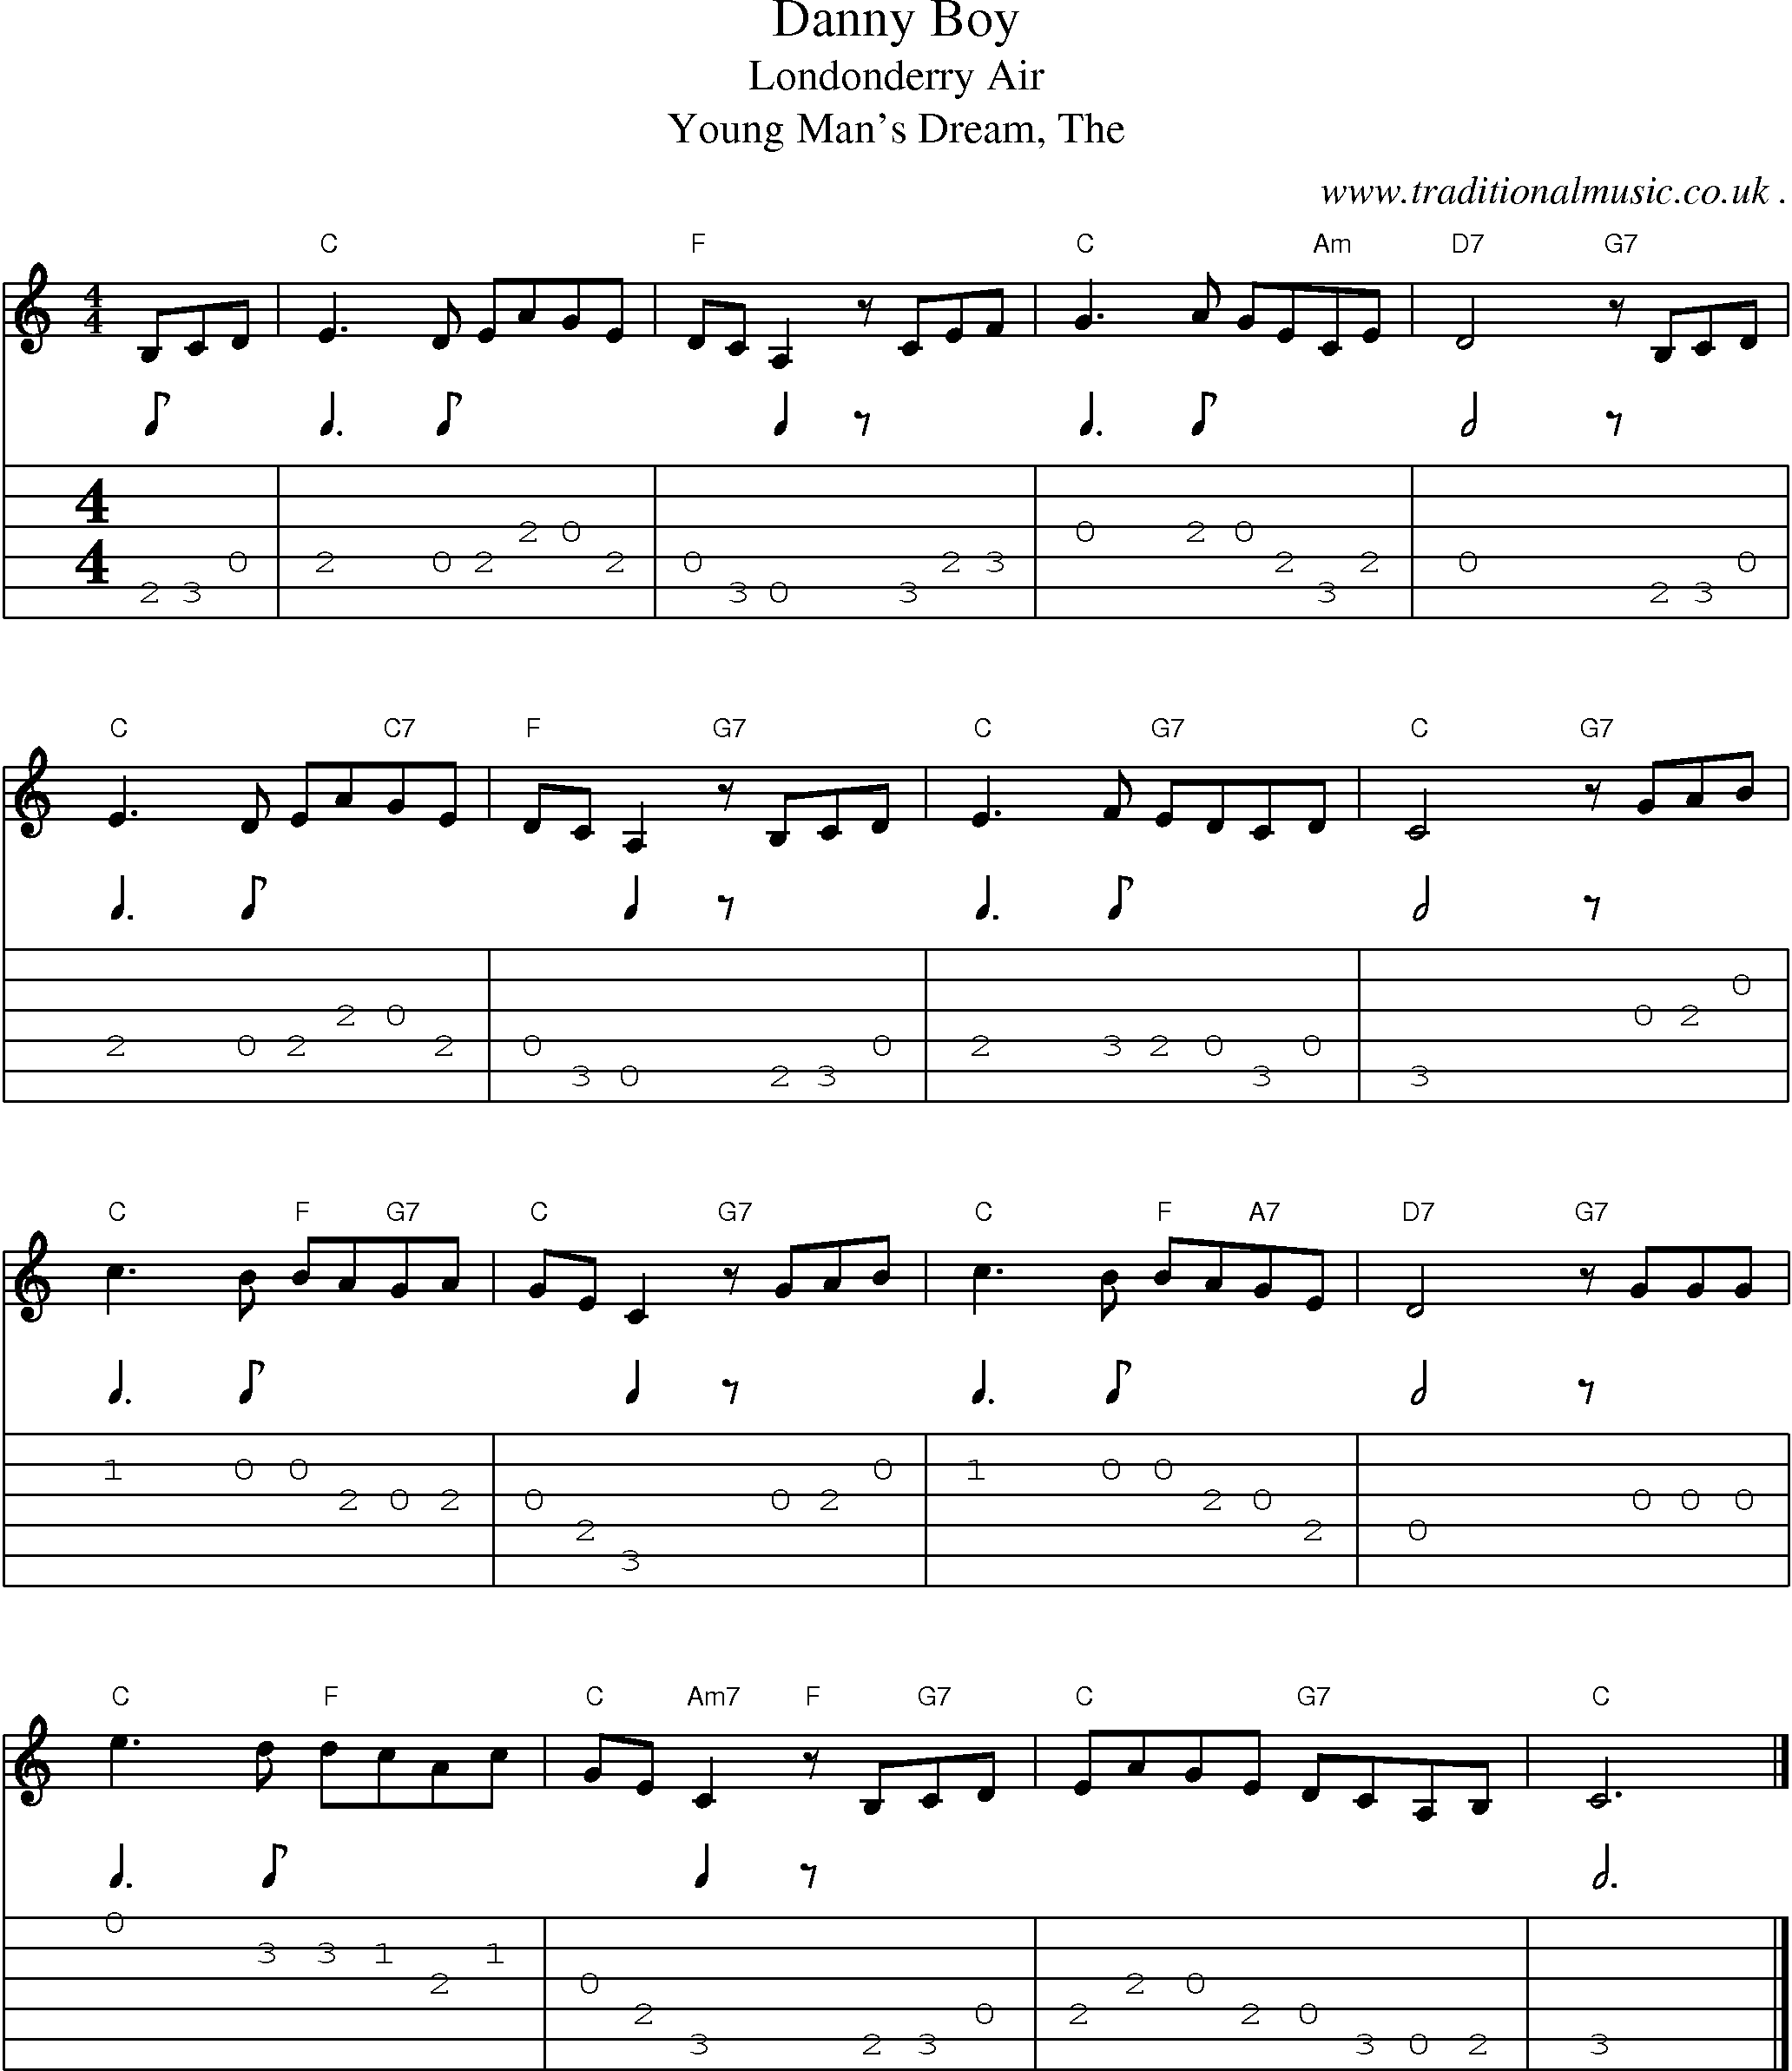 Music Score And Guitar Tabs For Danny Boy Music Theory In 2018